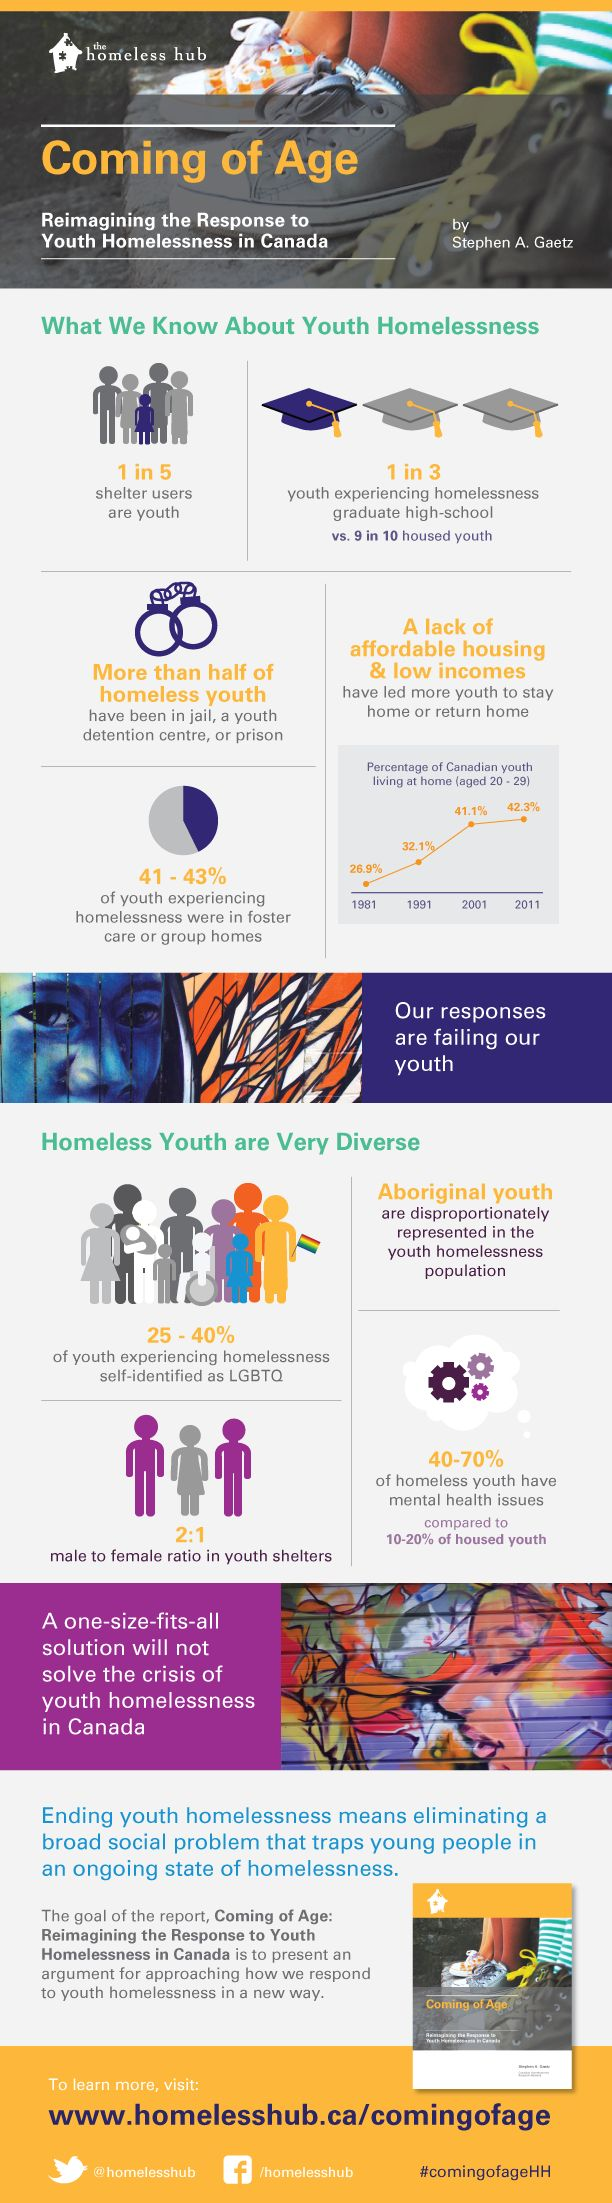 Reimagining the Response to Youth Homelessness in Canada.  What we know about youth homelessness and how our responses are failing them. via The Homeless Hub